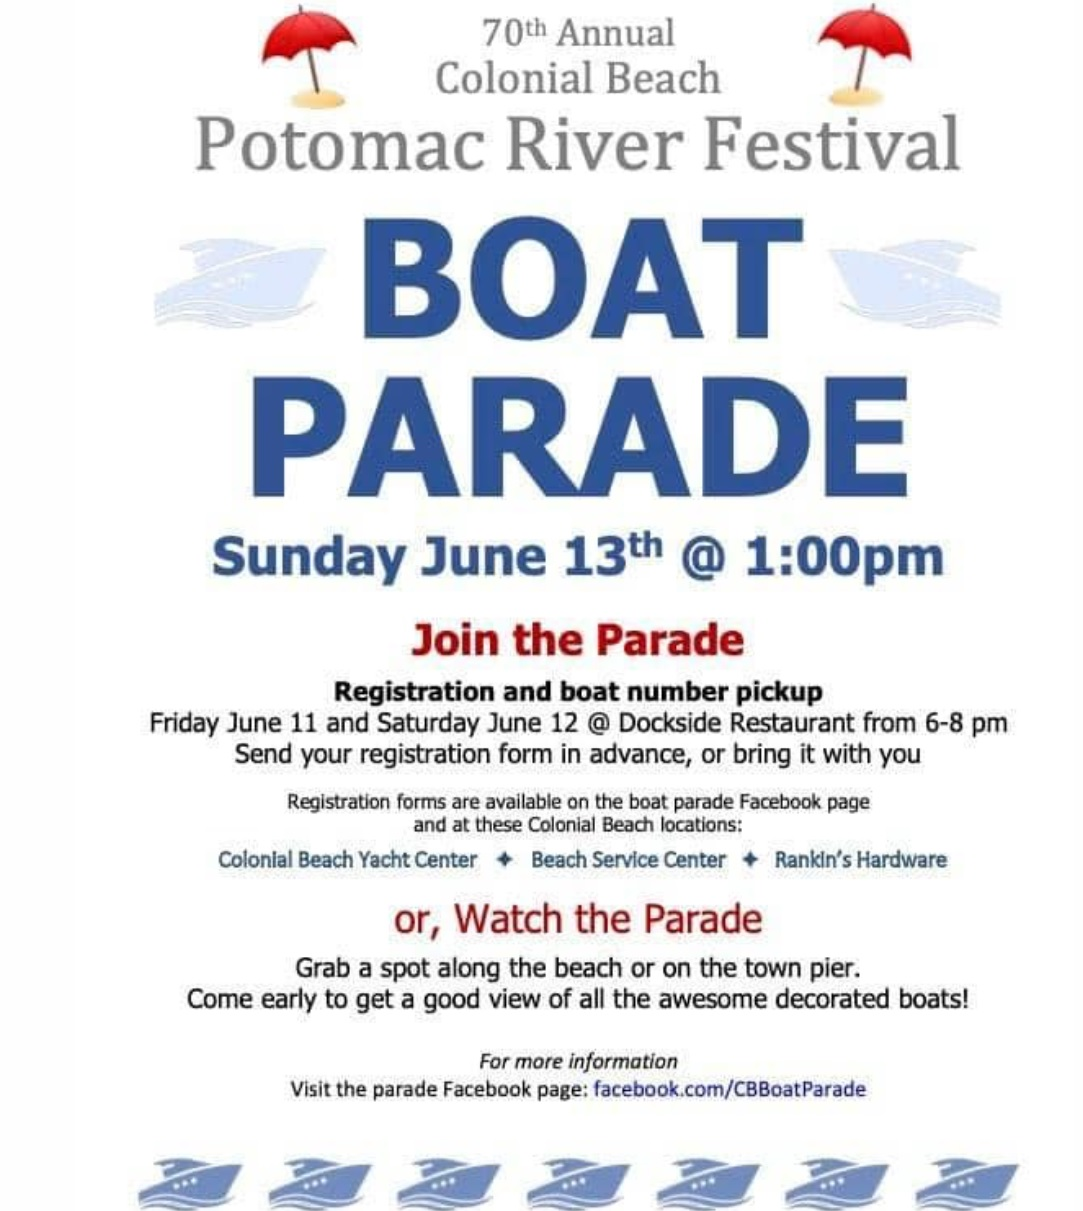 Boat parade flyer for 2021